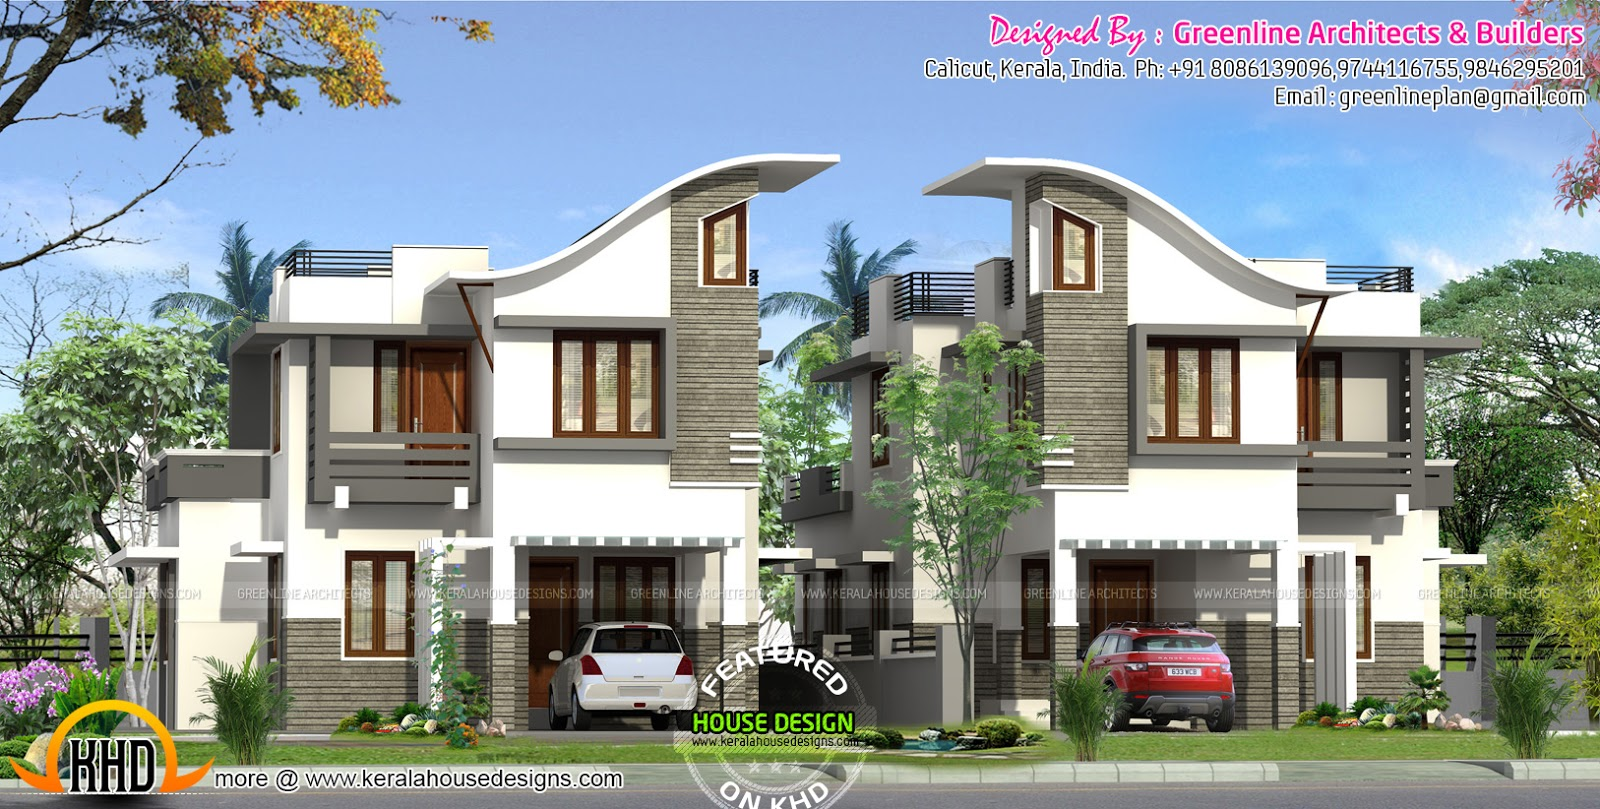 Twin house design kerala home design and floor plans Twin bungalow plans